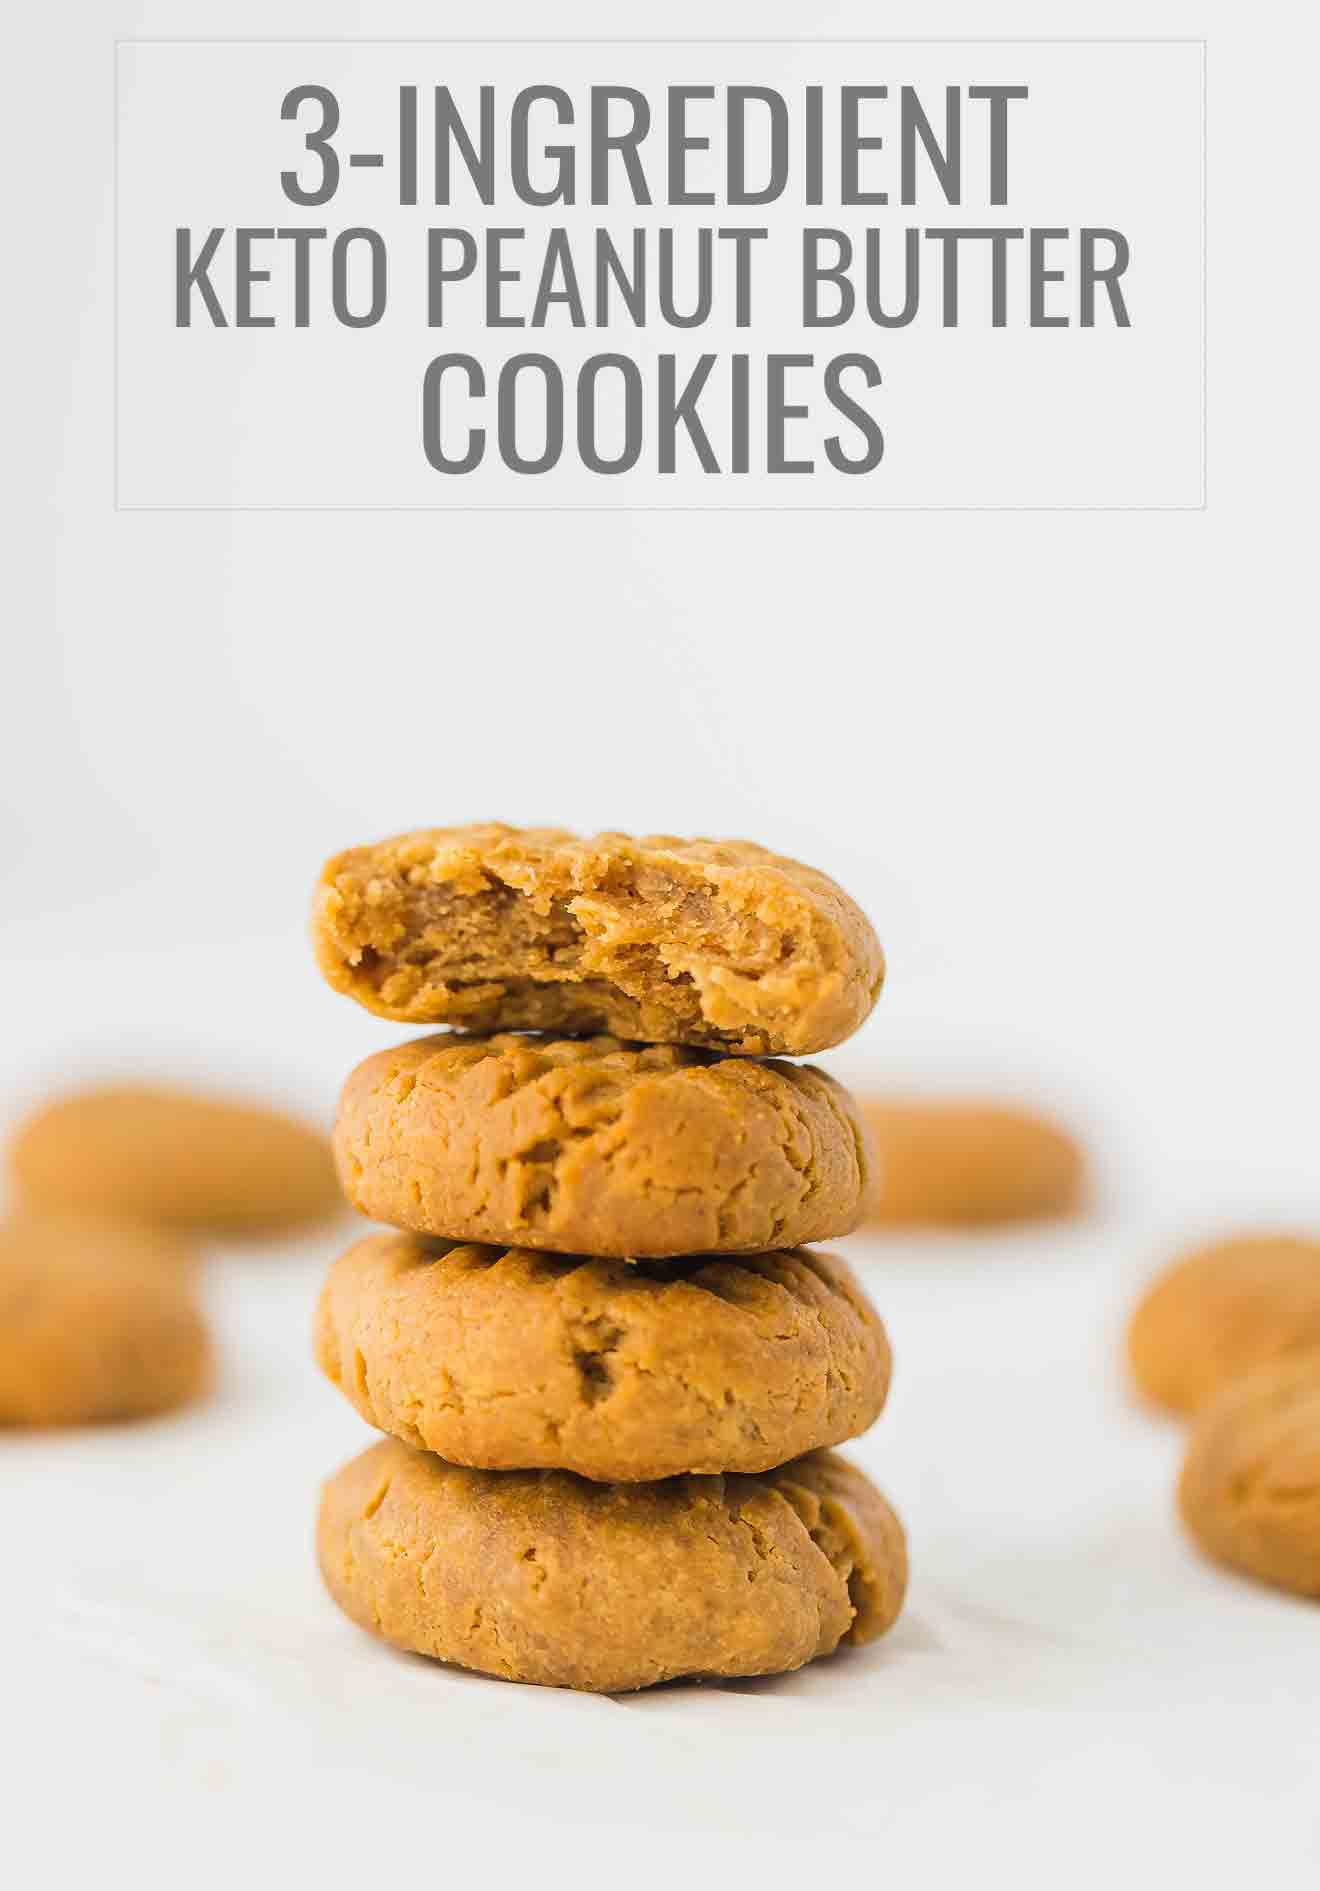 Keto Peanut Butter Cookies Recipe - low-carb, sugar-free, gluten-free cookies made with only 3 ingredients in 20 minutes.